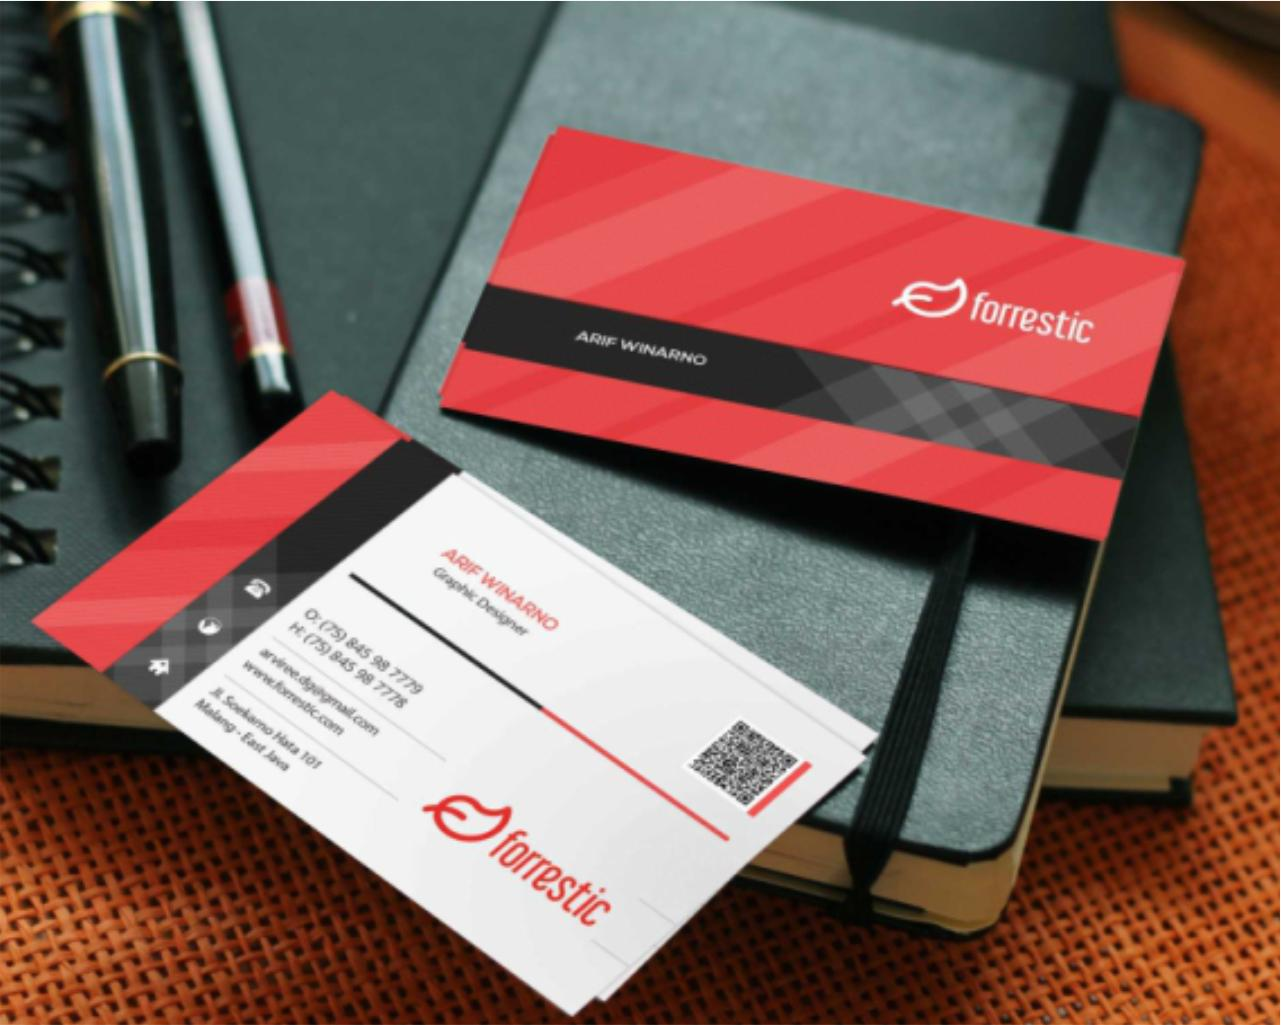 Professional Business Card Design  by arriever - 82948